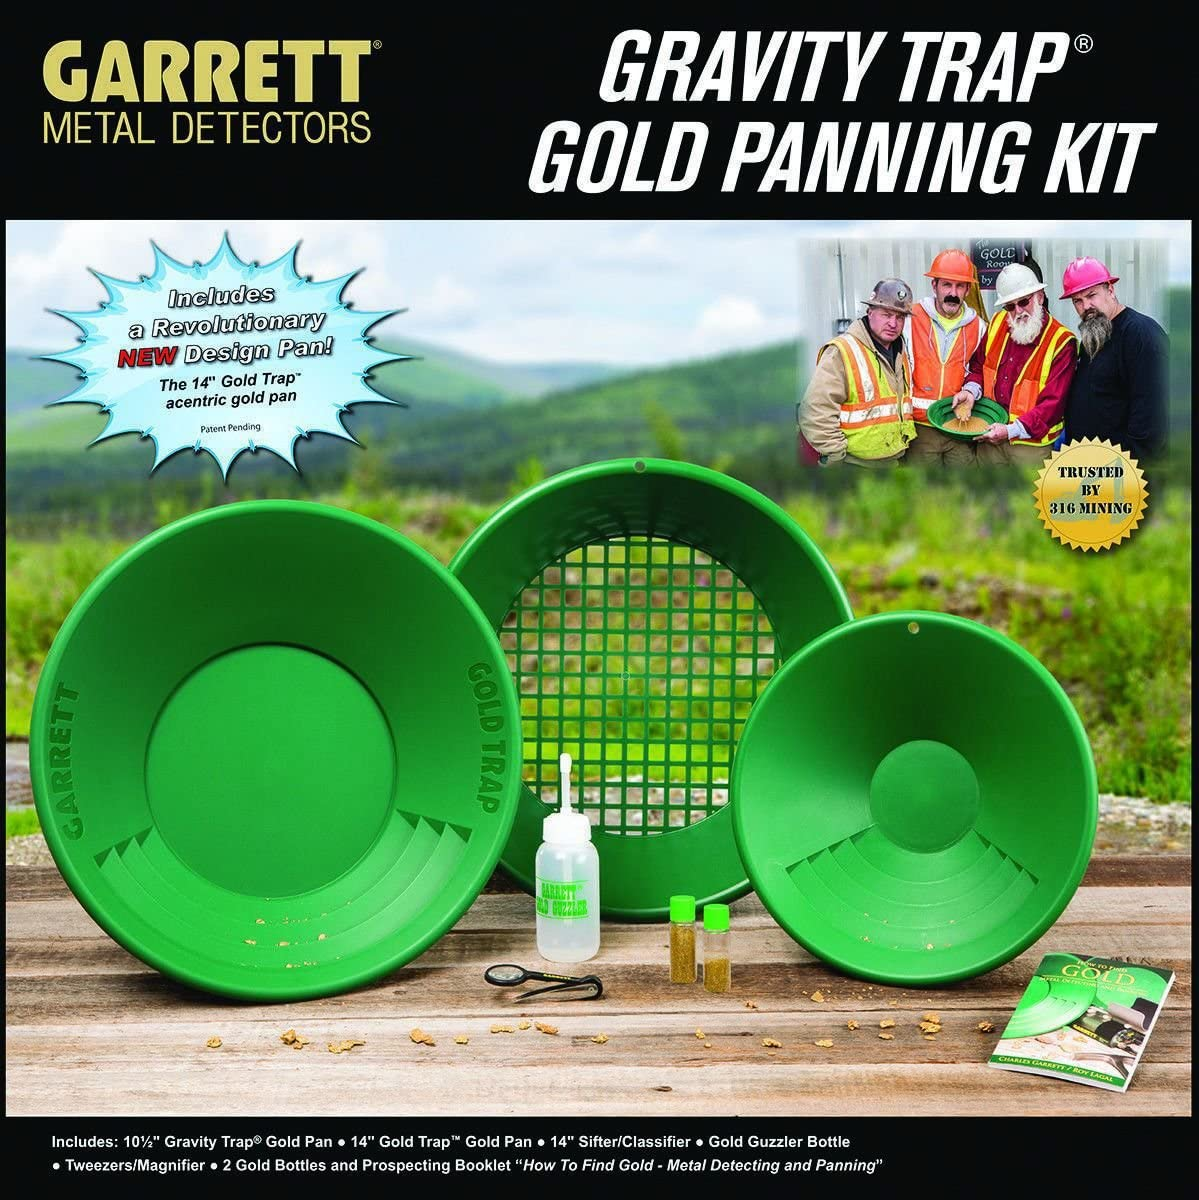 Garret Metal Detectors New Gold Pan Kit, GAR1651310